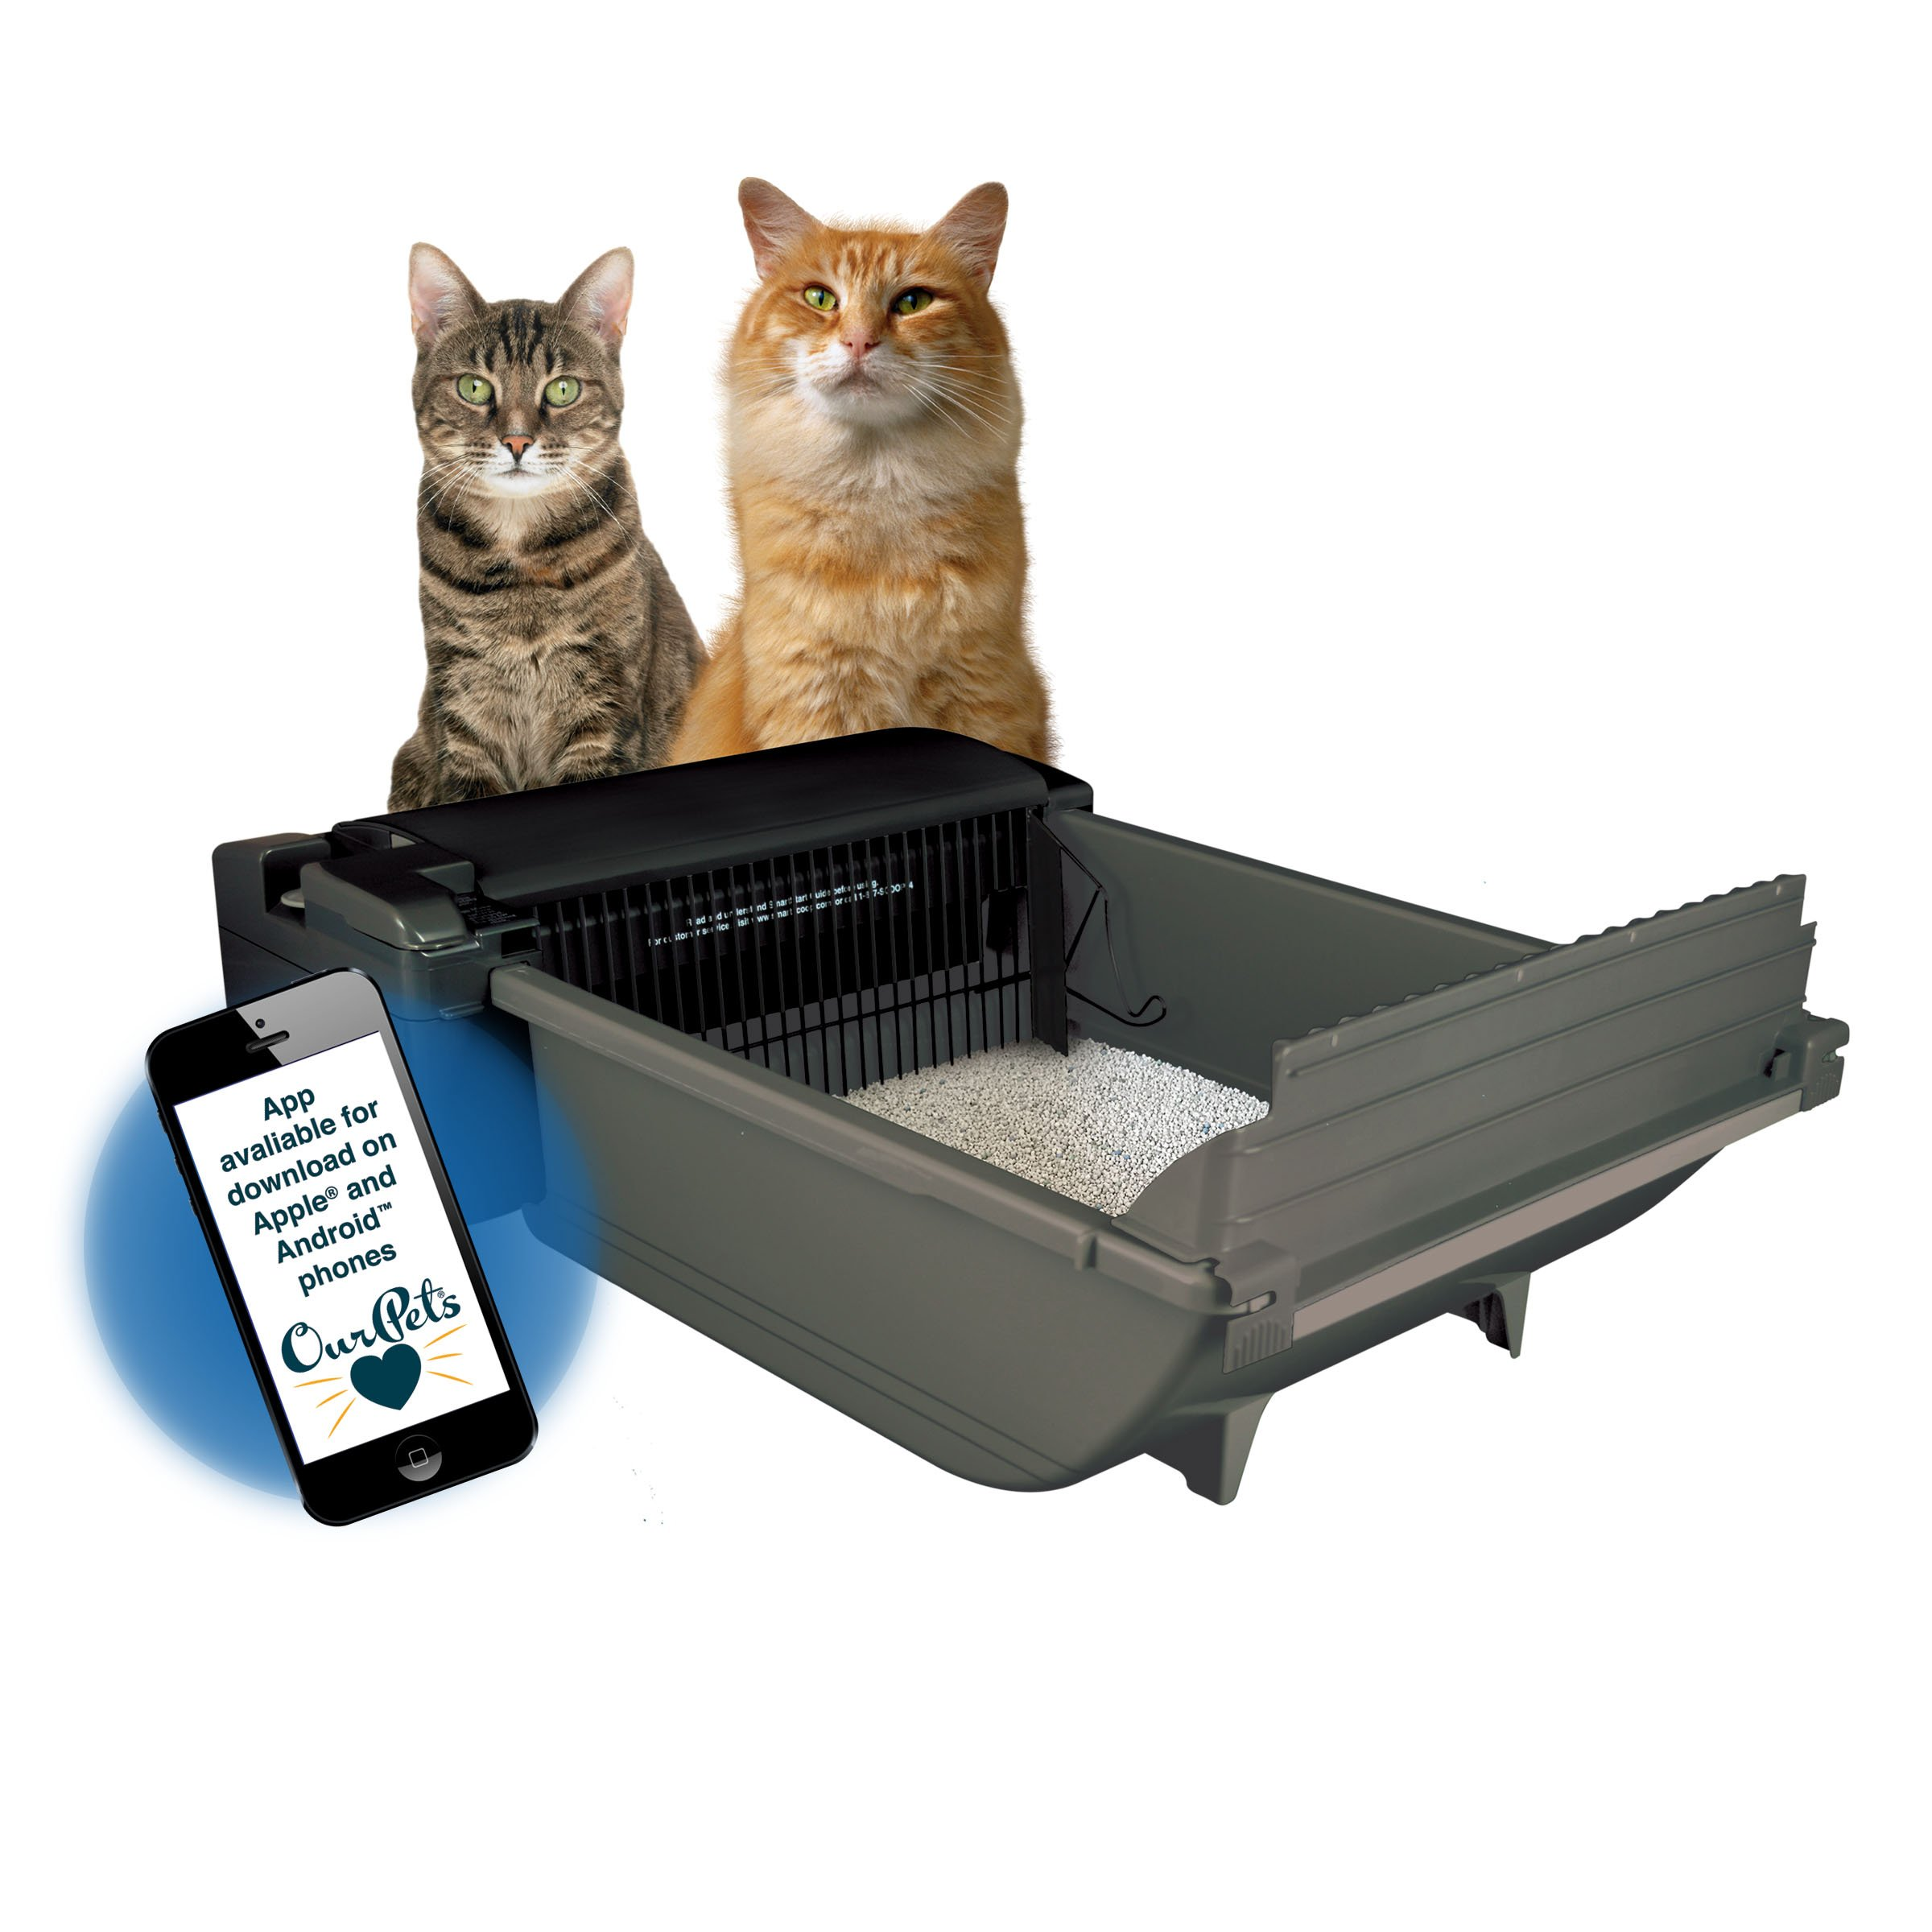 Our Pets Smart Scoop Intelligent Bluetooth Litter Box Self Cleaning Health Monitoring System